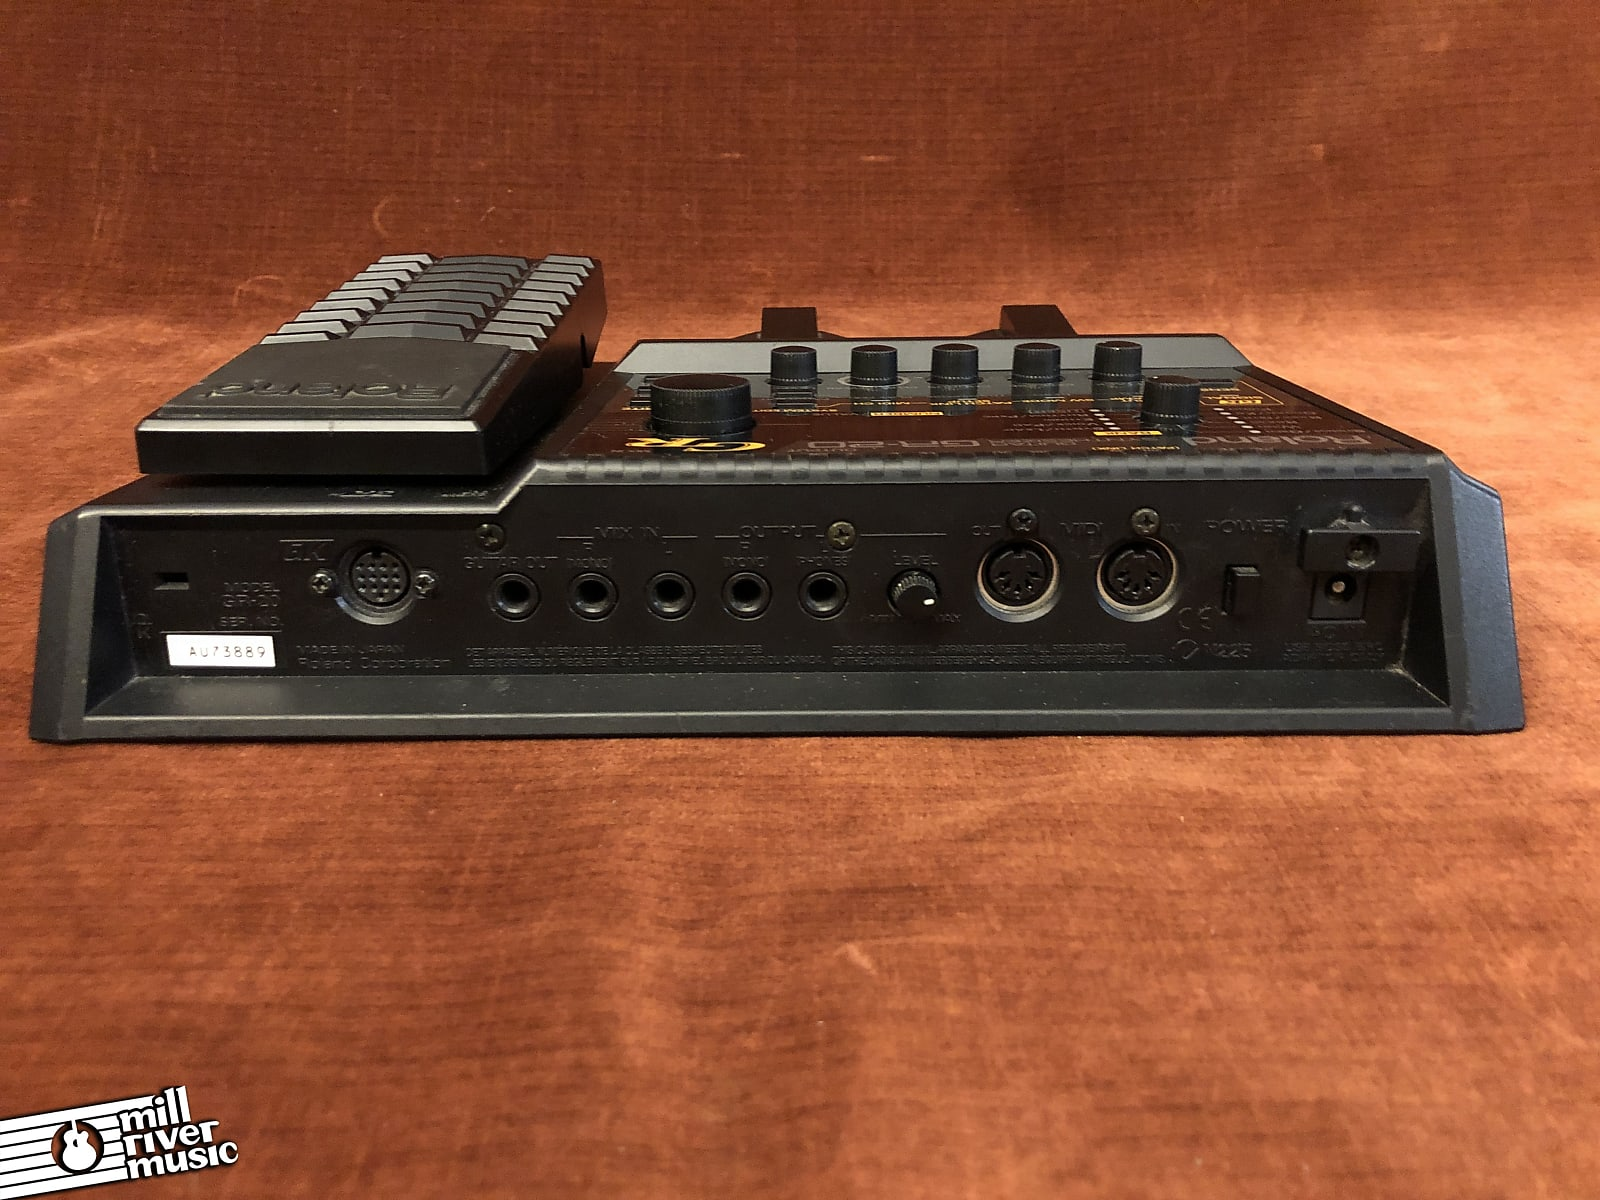 Roland GR-20 Guitar Synthesizer MIDI Effects Pedal w/ GK-3 Pickup, Box & Power Supply